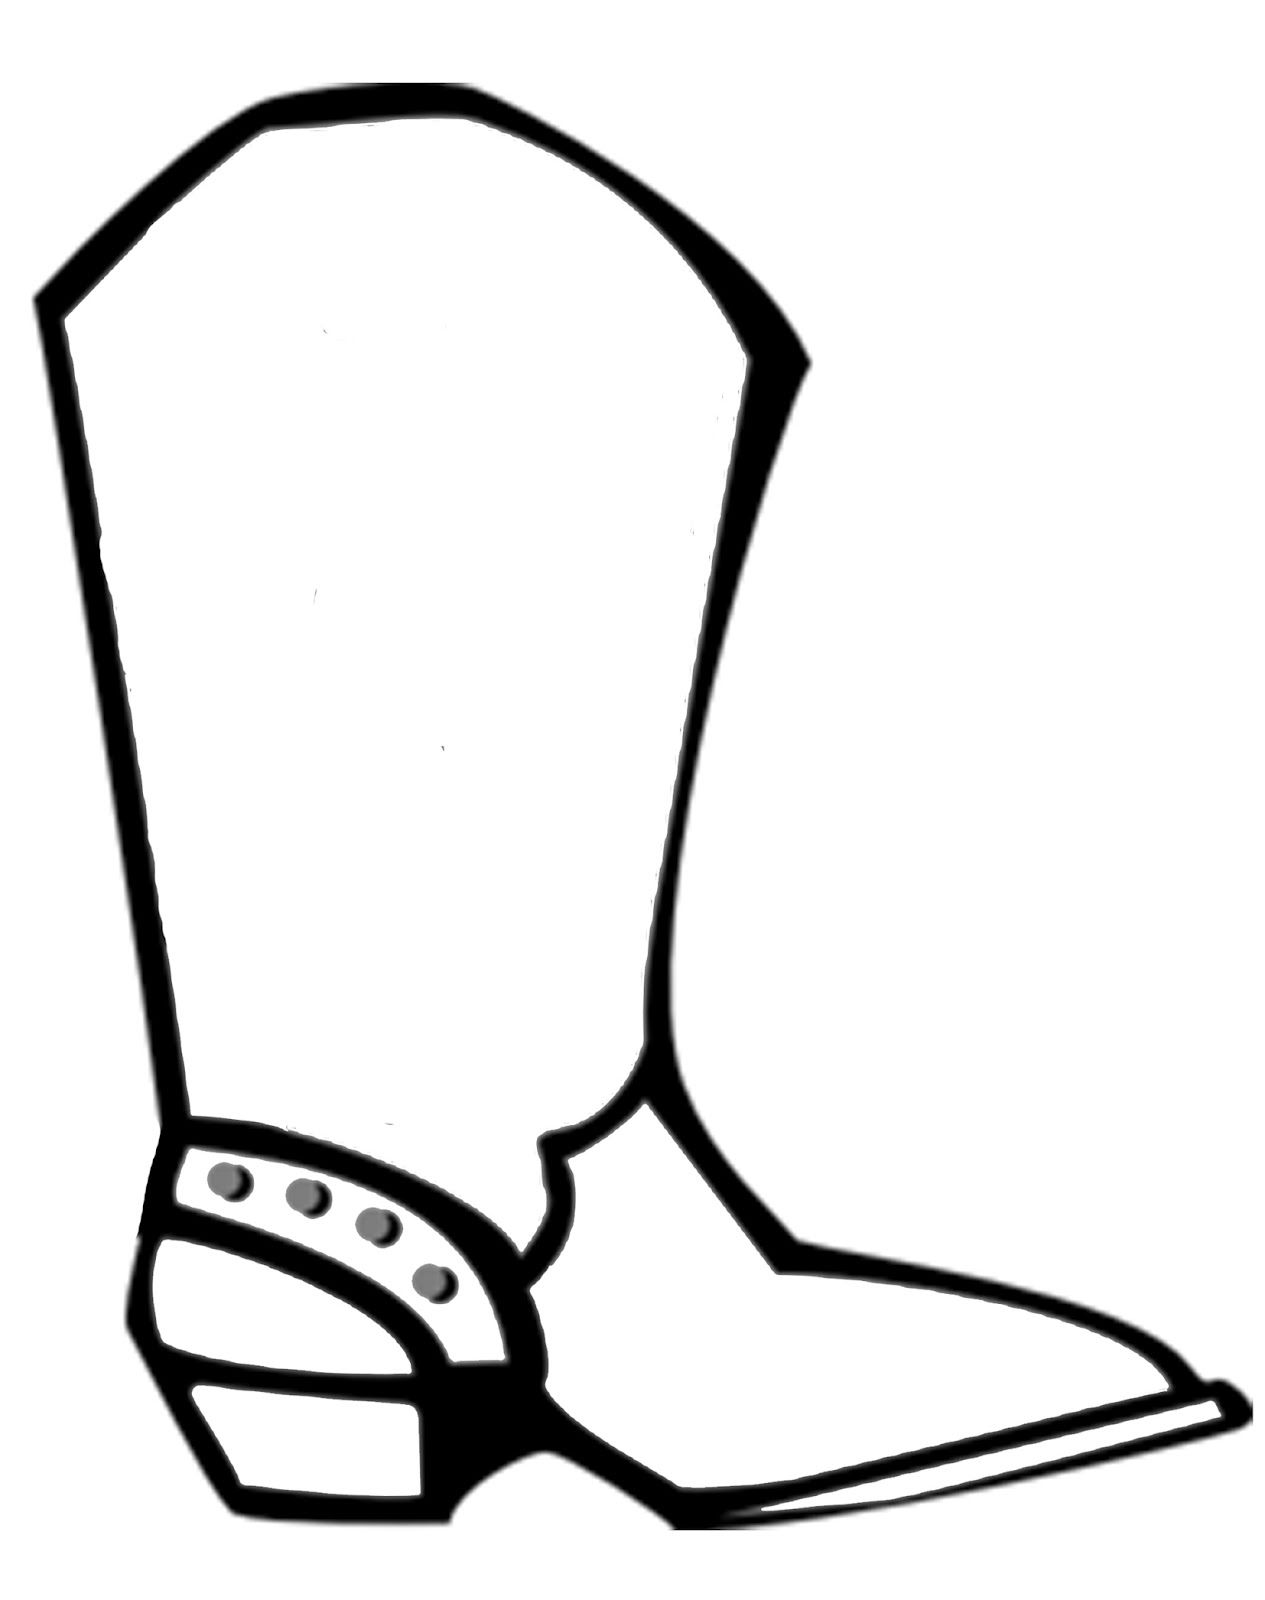 Printable coloring pictures of cowboy boots - Cowboy Boots Drawingthe Quandong Tree Kids Birthday Party Theme Western The Details Uaqqt